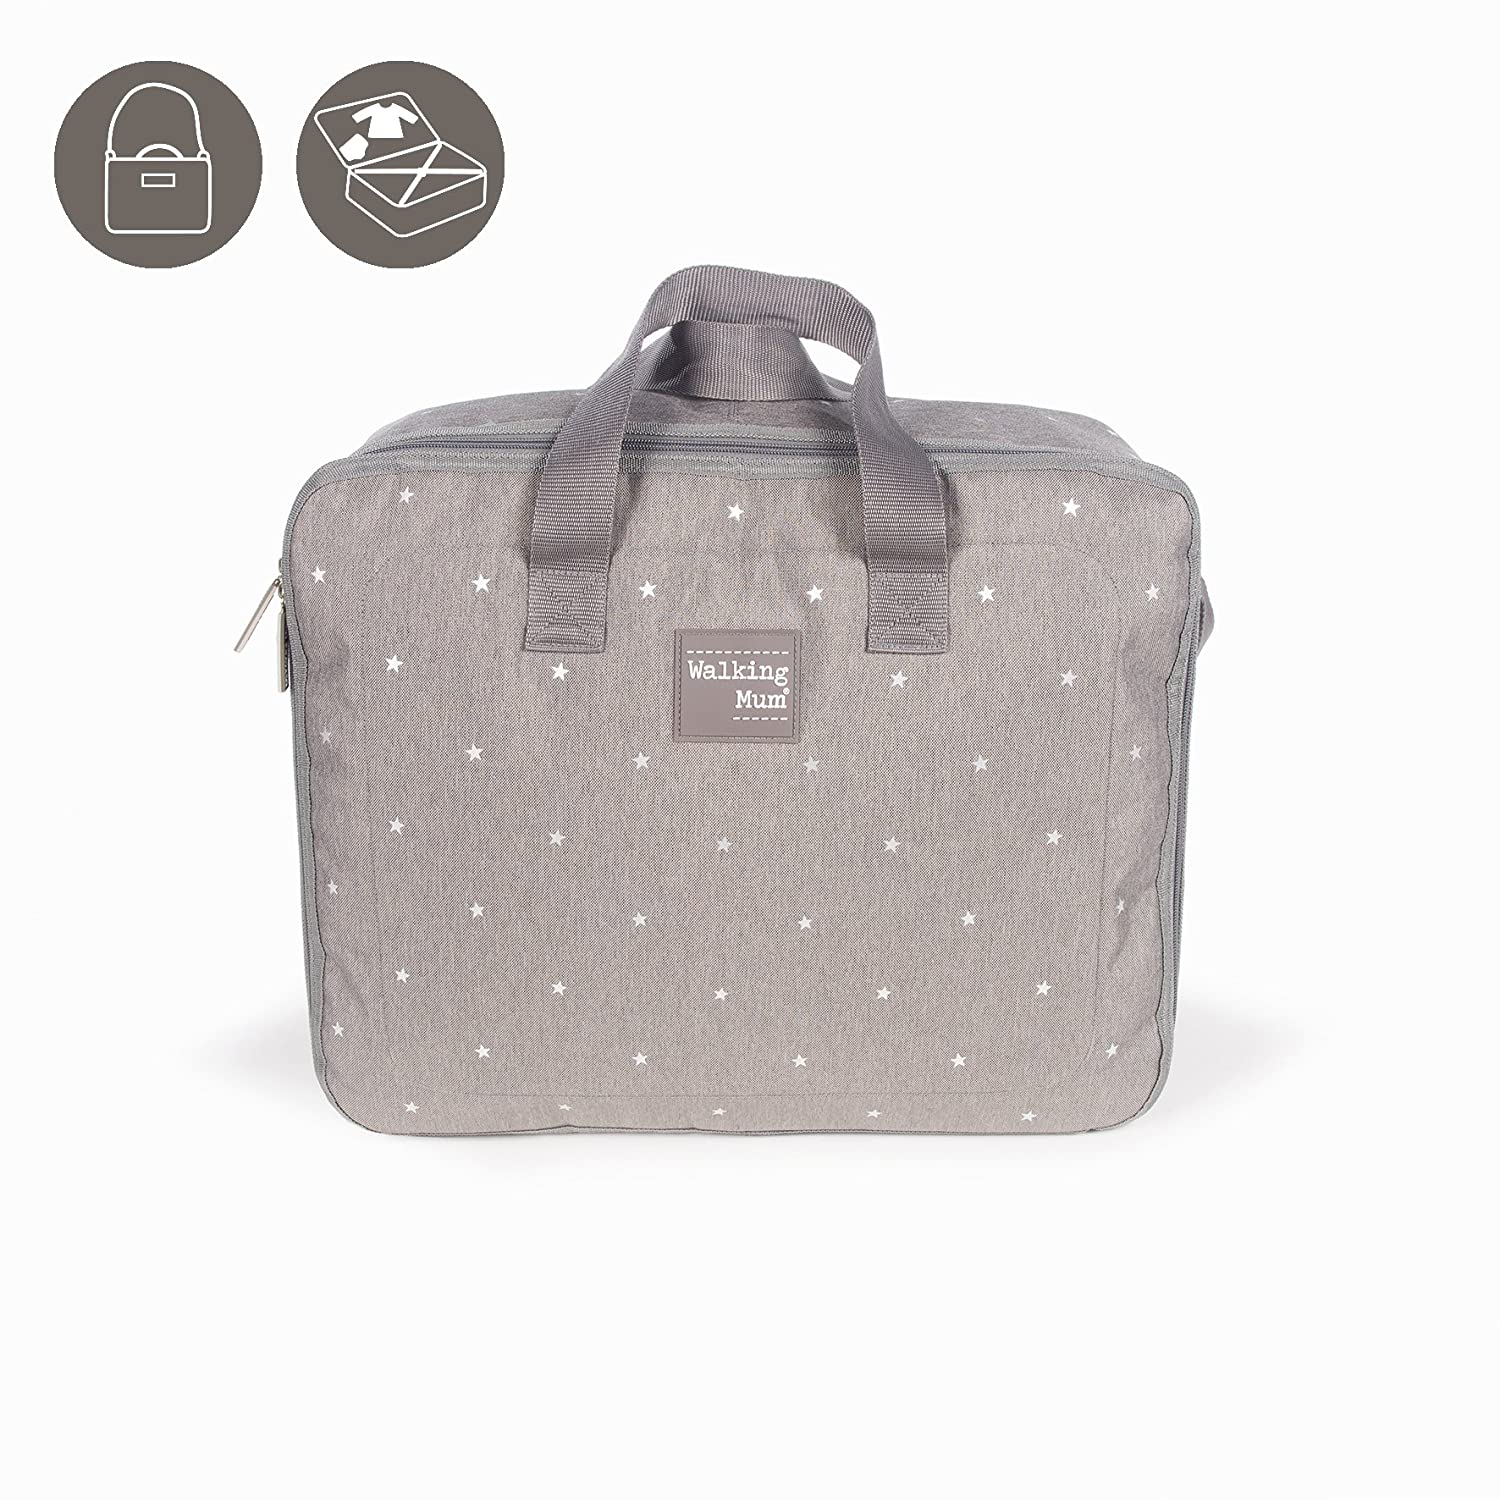 Walking Mum Valise Gris 35721